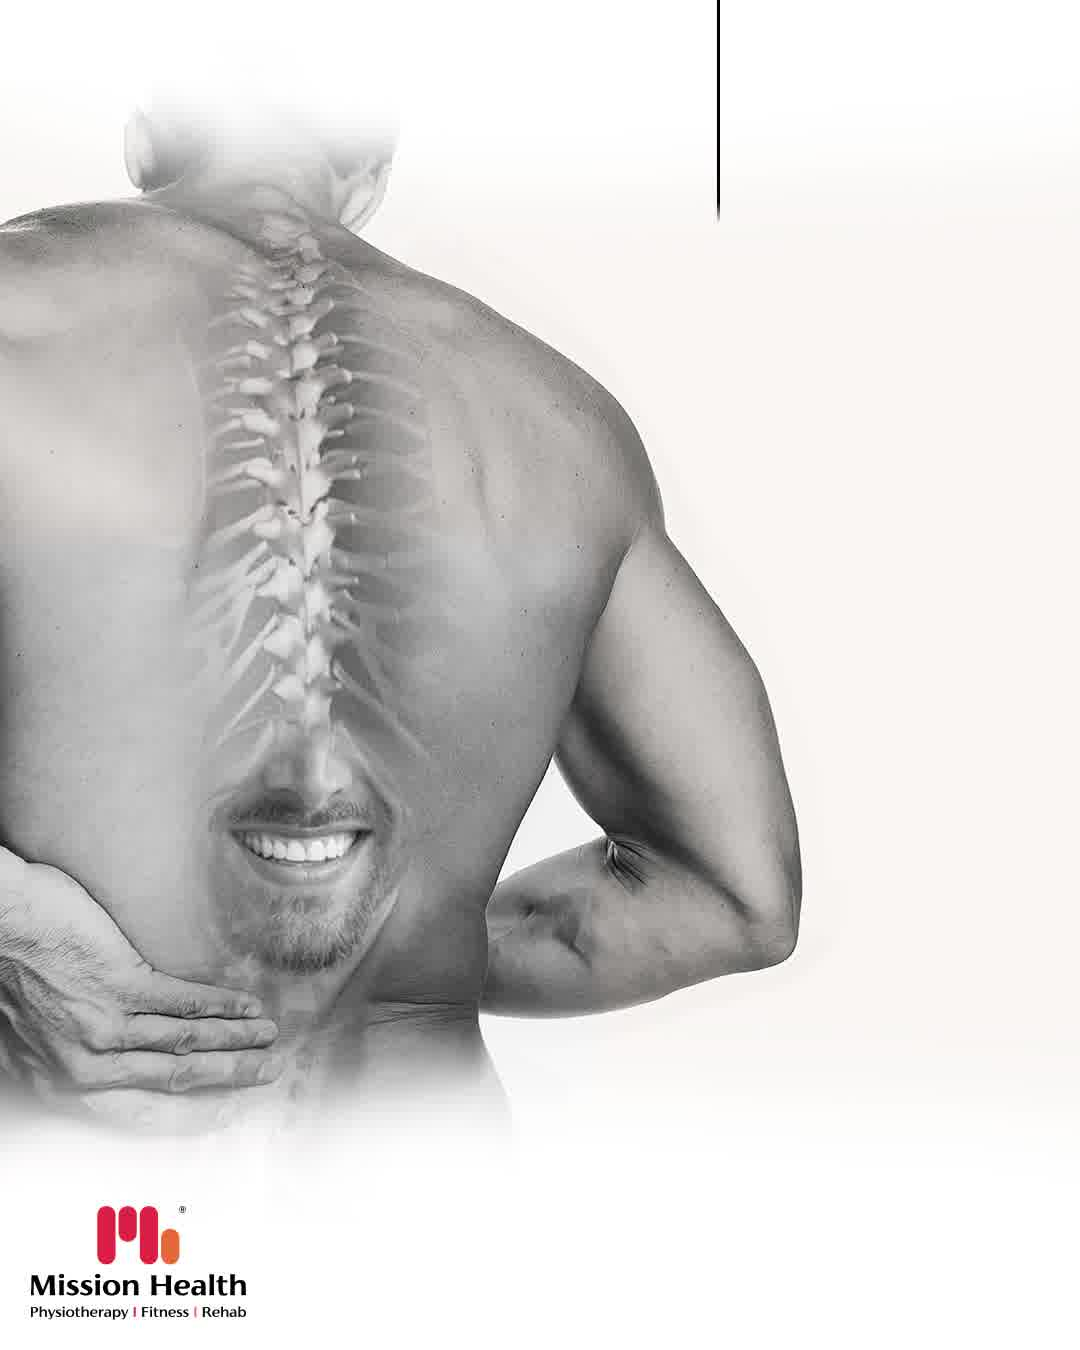 In majority of the people, slipped discs are the result of wear and tear. Over the years, the spinal discs tend to lose their elasticity, hence the fluid gets leaked out and they become brittle and cracked. These changes are a normal part of the aging process but it greatly varies from person to person.  The worst part about the problem is that the herniated disk or the slip disk happens without giving any prior notions of its occurrence.   Not every disc requires intervention but about 2-5% of the slip disc do require the intervention & ailment.  Although it is a serious health disorder that brings a lot of lifestyle changes; 95-98% of Slip Disc can be cured and reversed with right physiotherapy treatment.  Sympathy cannot reverse slip disk but the right treatment CAN.  Consult our Super speciality Spine clinic to get your slipped disc reversed.  Mission Health Helpline Number: +916356263562  www.missionhealth.co.in  #SlippedDisc #SpineSpecialist #MissionHealth #Fitness #PersonalTraining #MovementIsLife